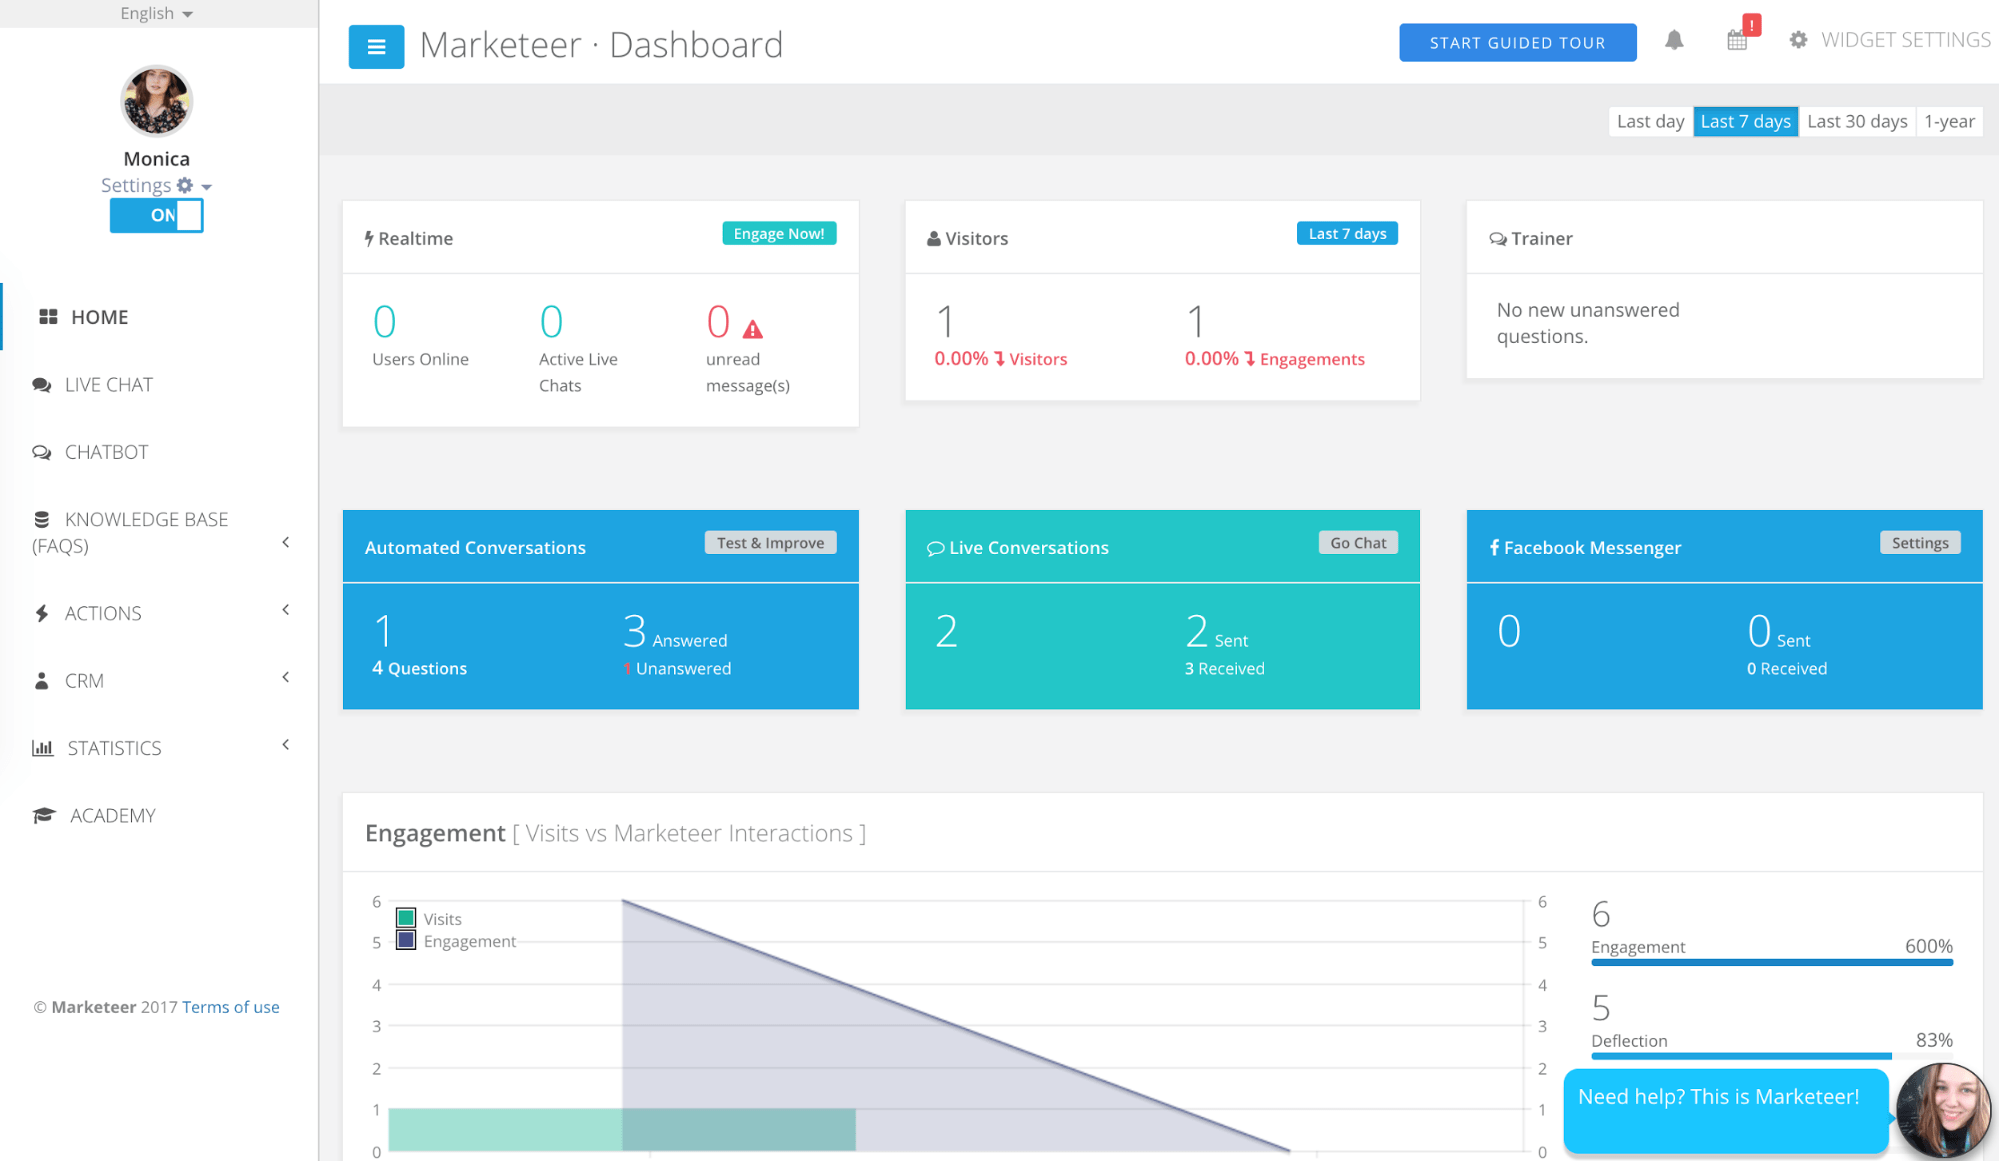 Marketeer dashboard